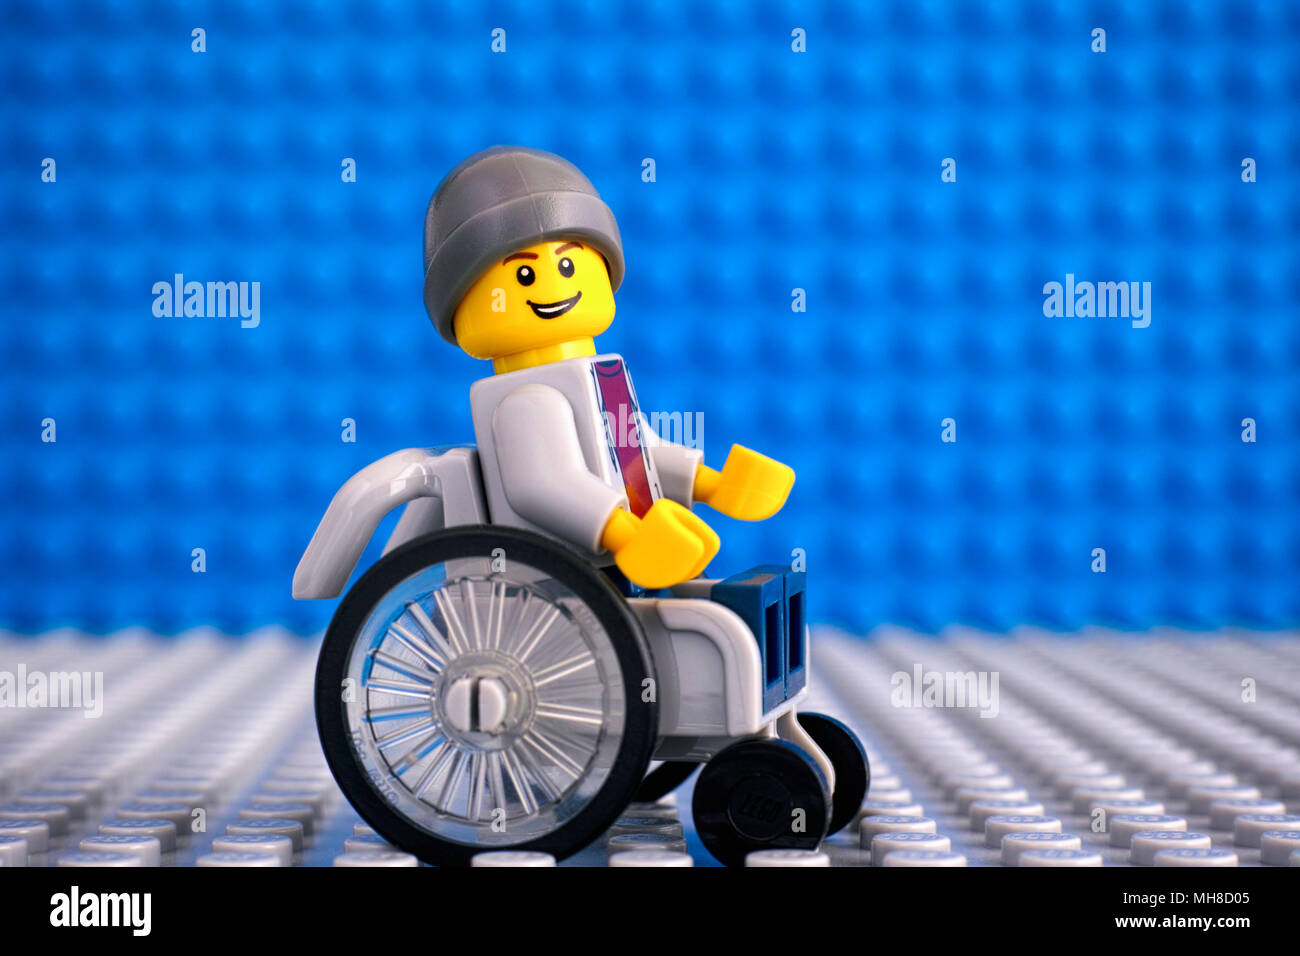 Tambov, Russian Federation - February 05, 2018 Lego boy minifigure in wheelchair. Blue and gray baseplates background. Studio shot. - Stock Image